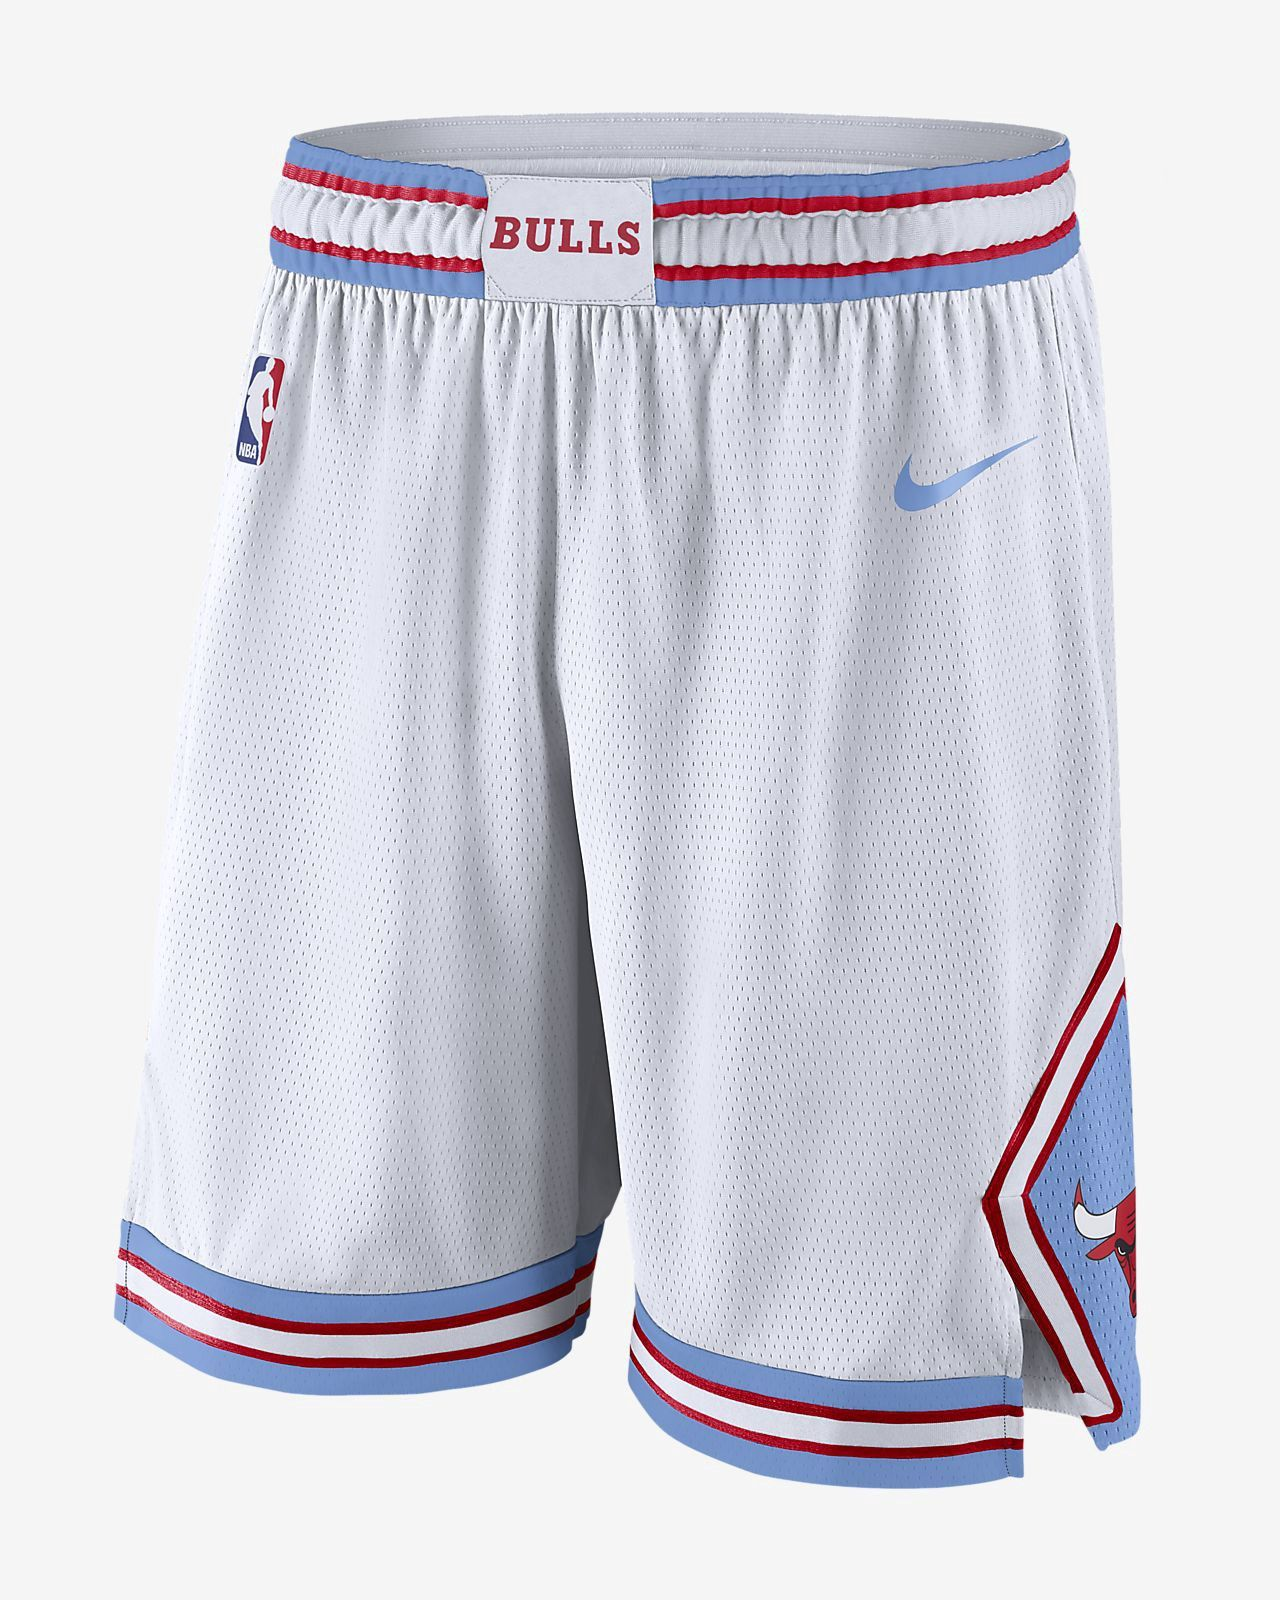 8319478f2 Nike Chicago Bulls City Edition Swingman Men s Nba Shorts - 3XL Blue ...